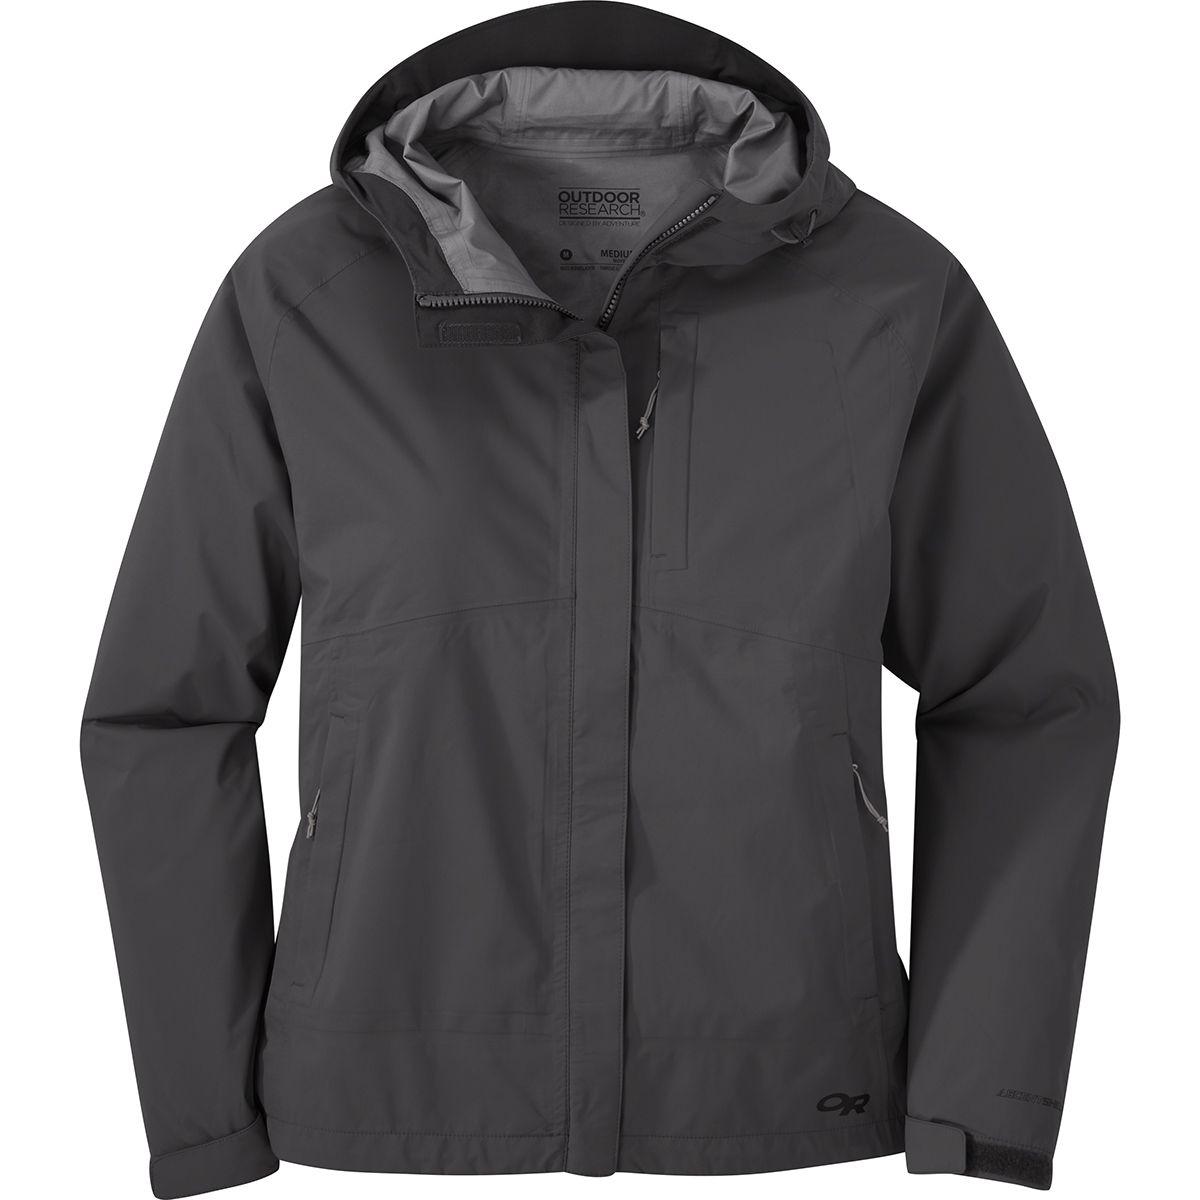 Outdoor Research Damen Guardian Jacke (Größe M, Braun) | Hardshelljacken & Regenjacken > Damen